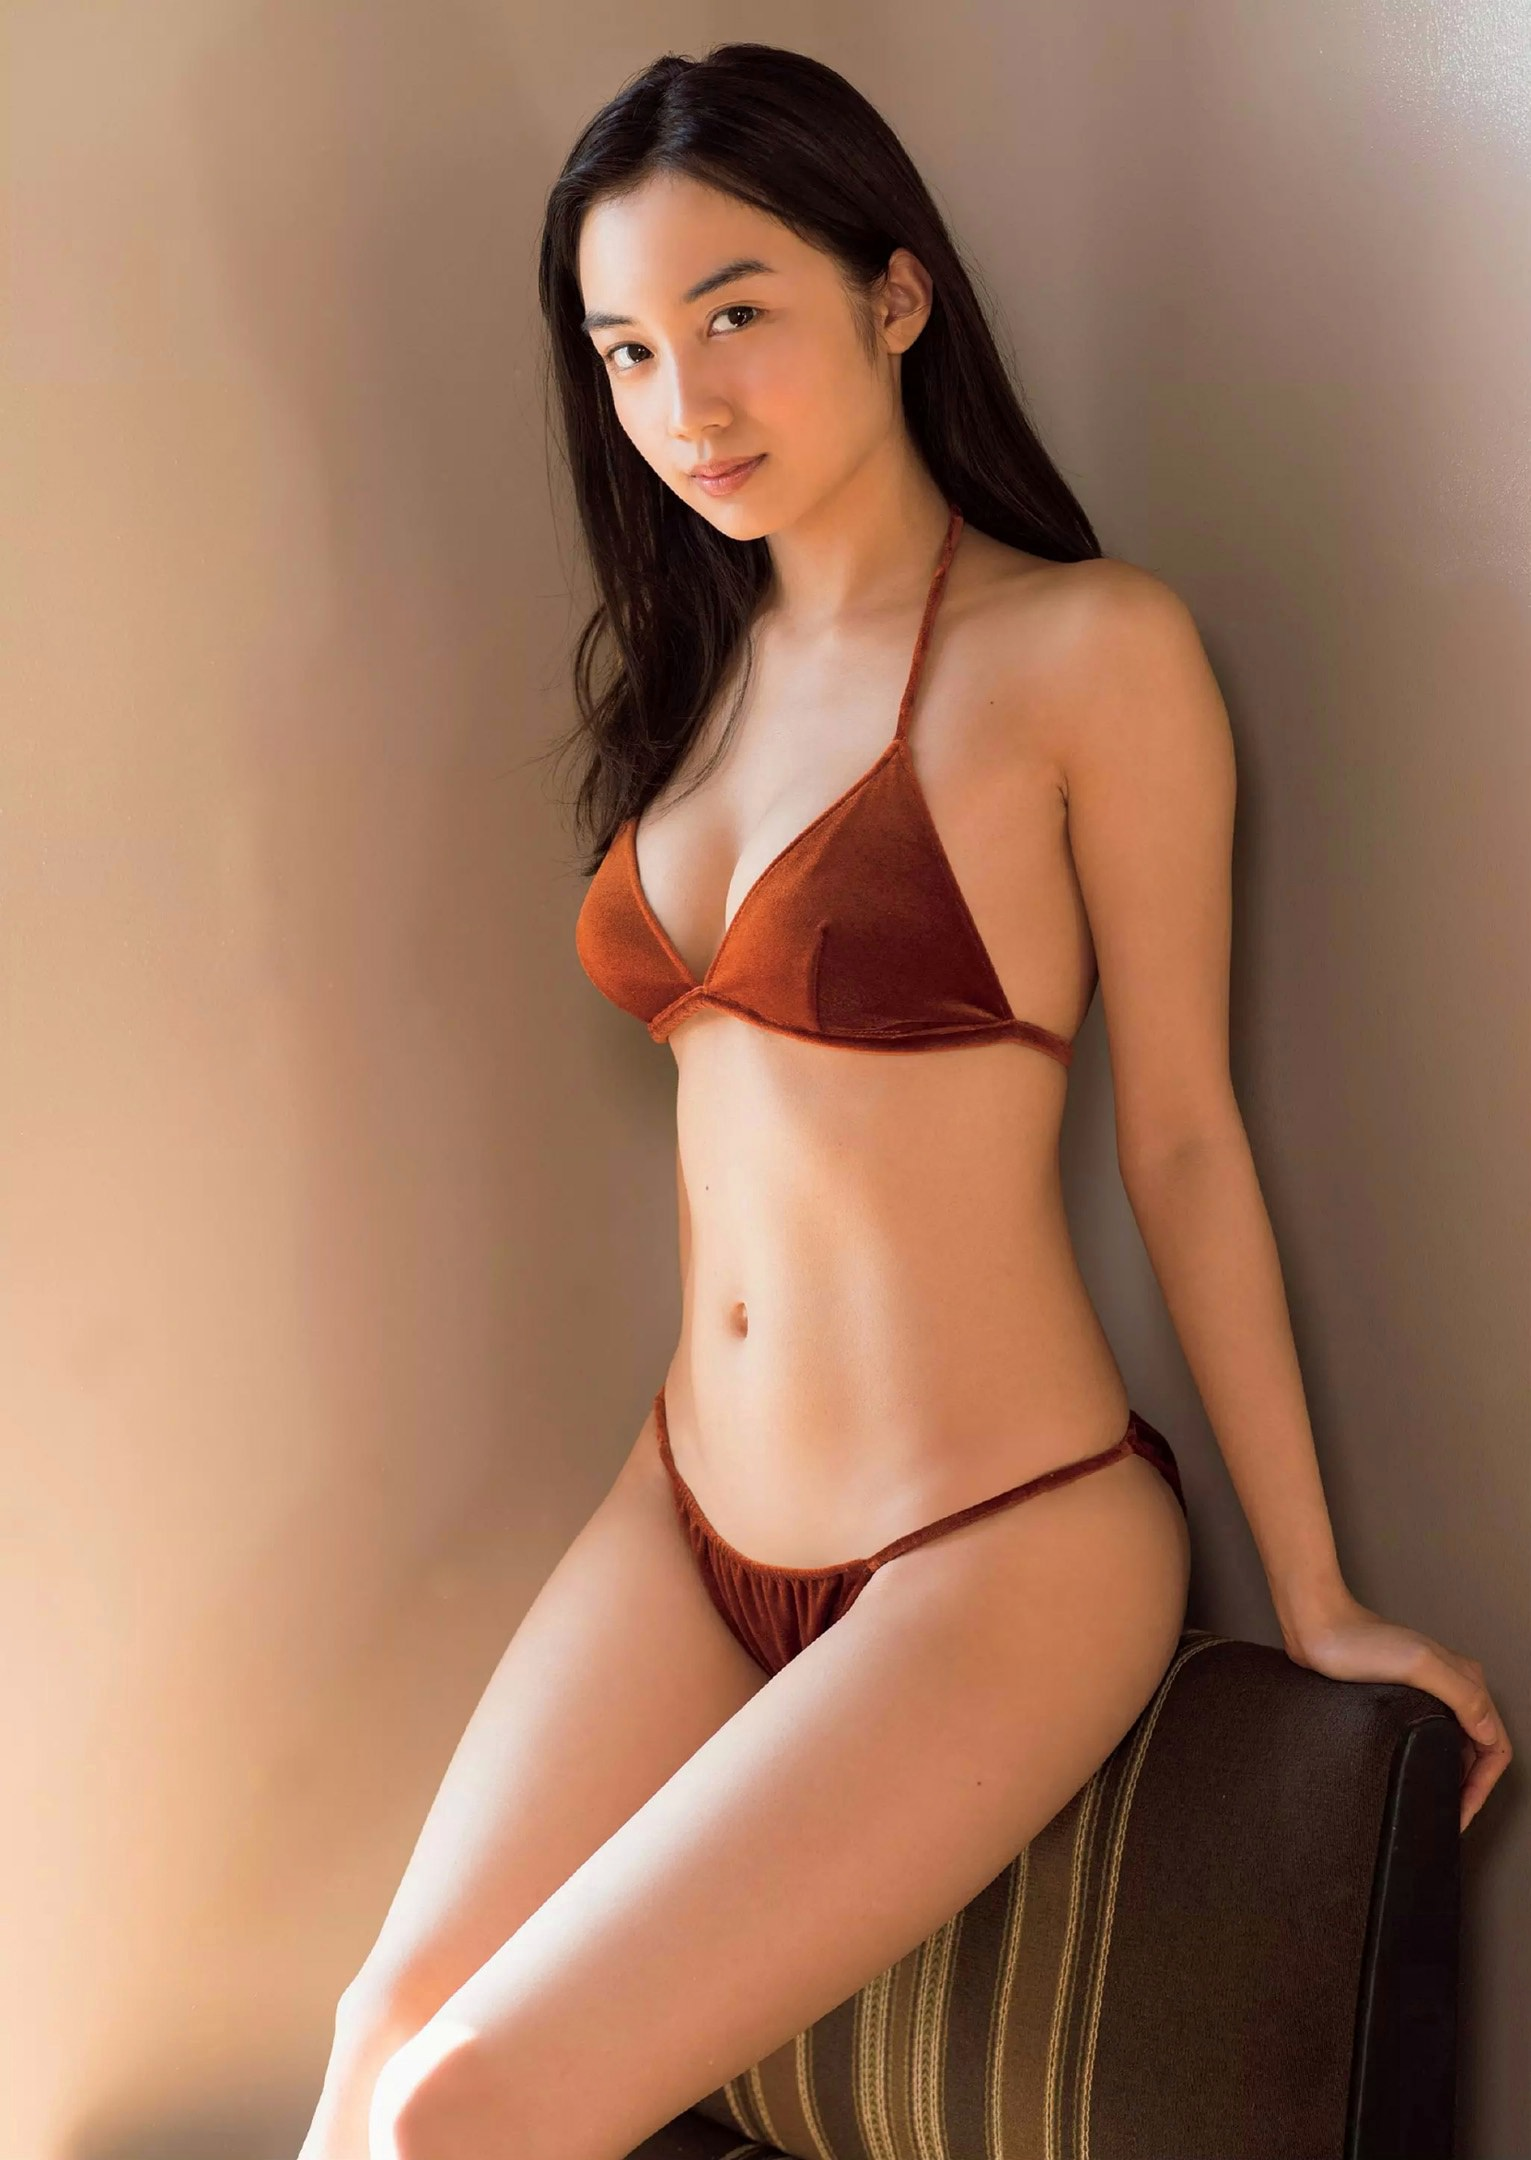 Photos of hot Asian women